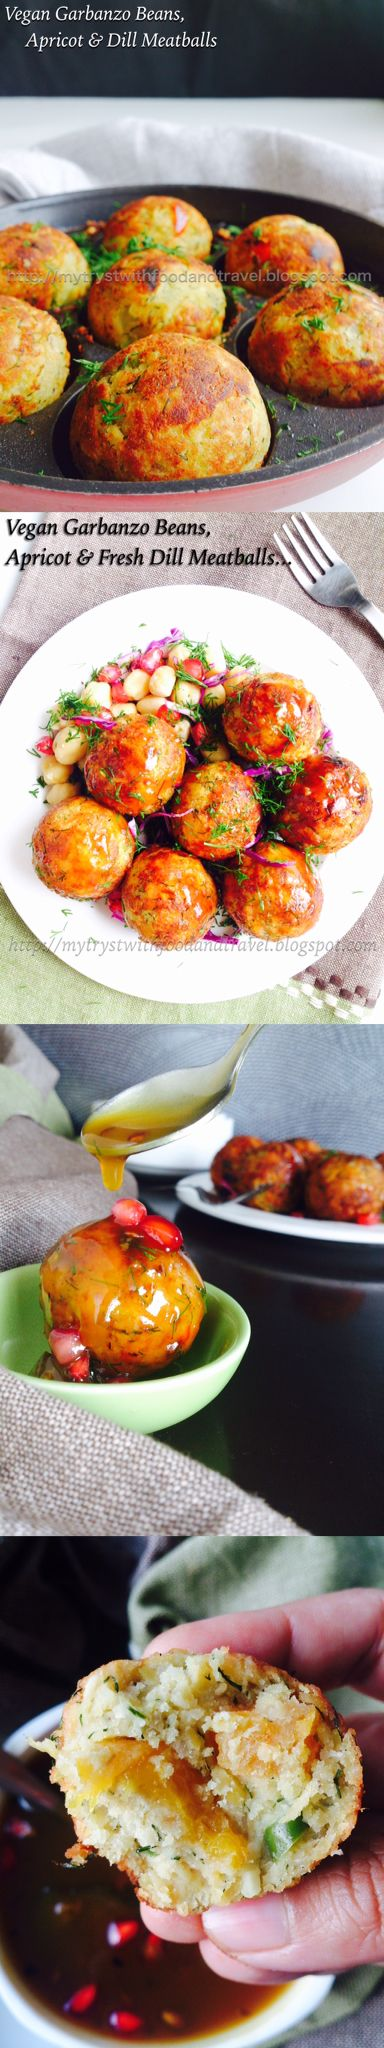 Vegan Garbanzo Beans/ Chickpeas, Apricots, Dill Meatballs. Perfect appetizer for the upcoming Super Bowl.